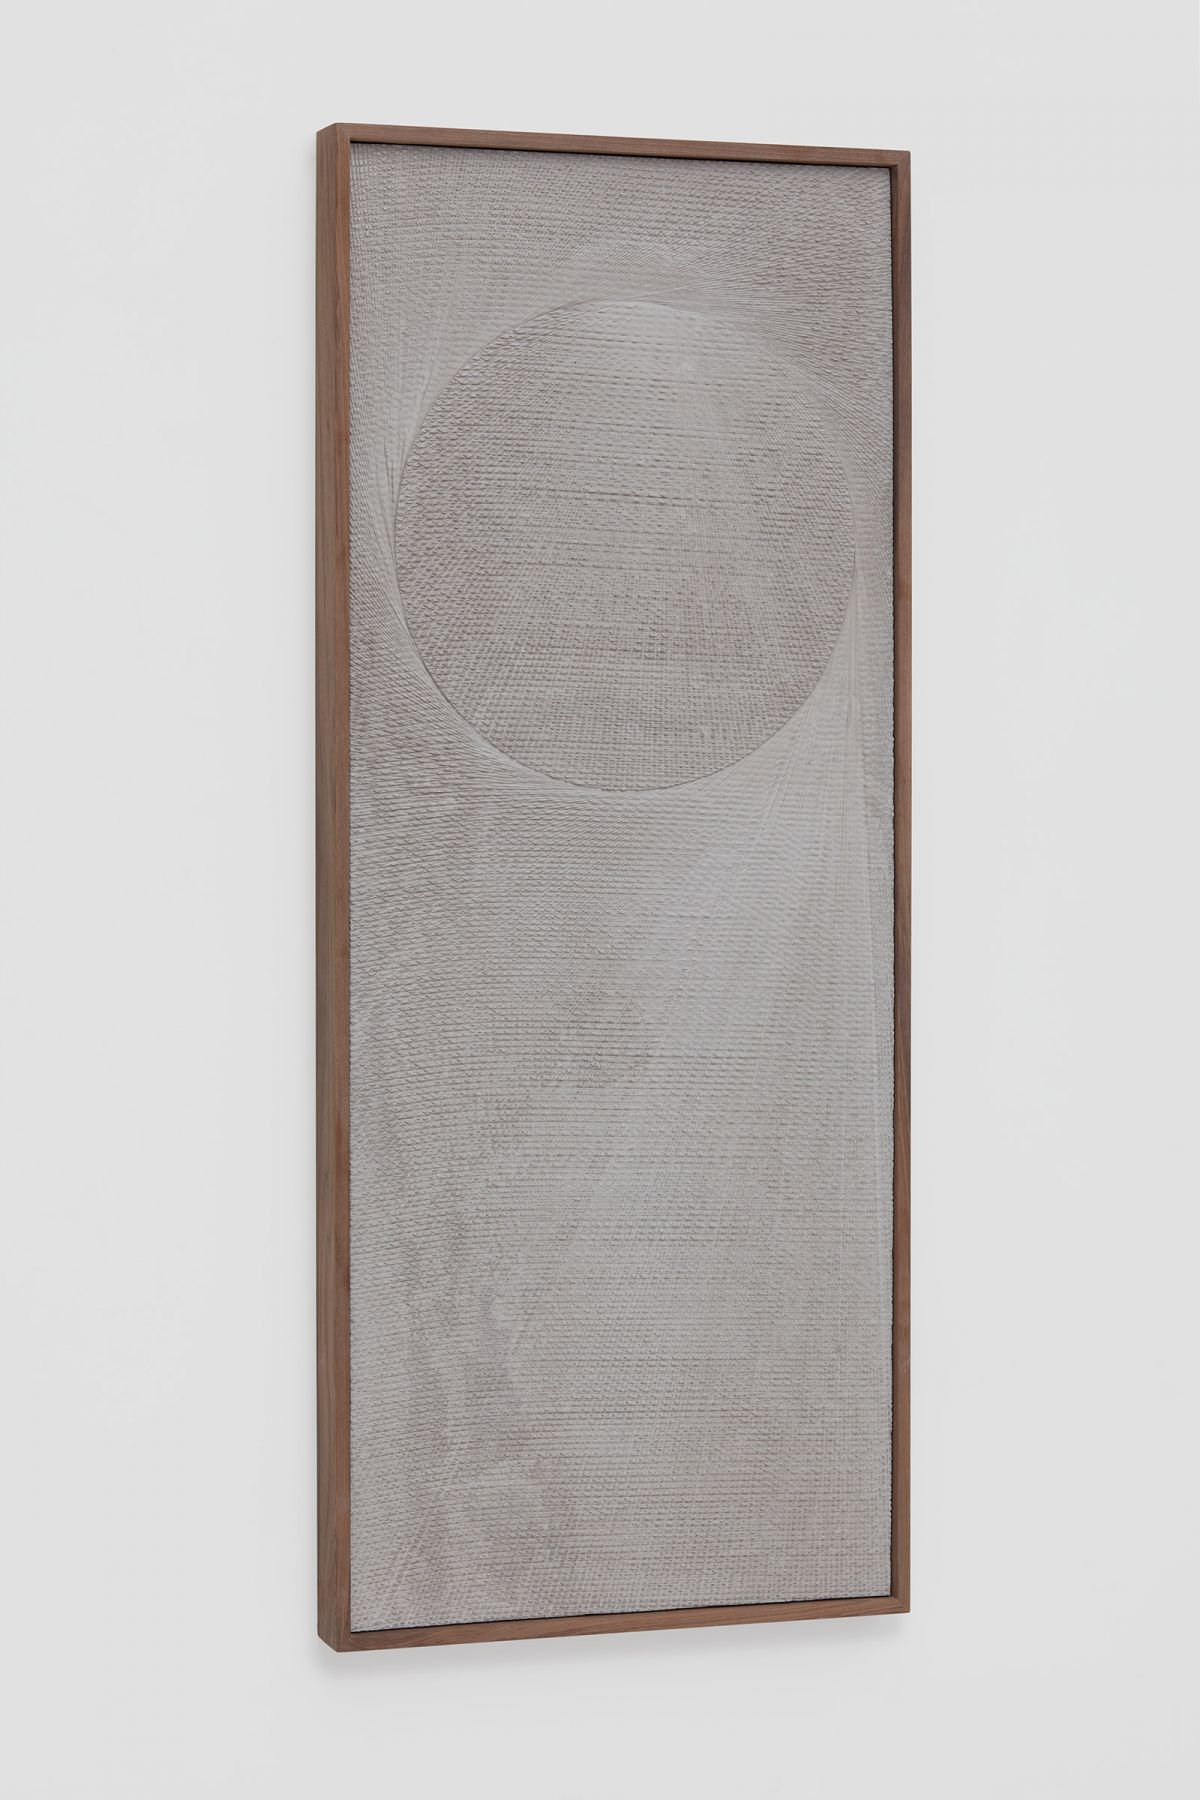 an angled view of an etched plaster work by anthony pearson, a contemporary artist